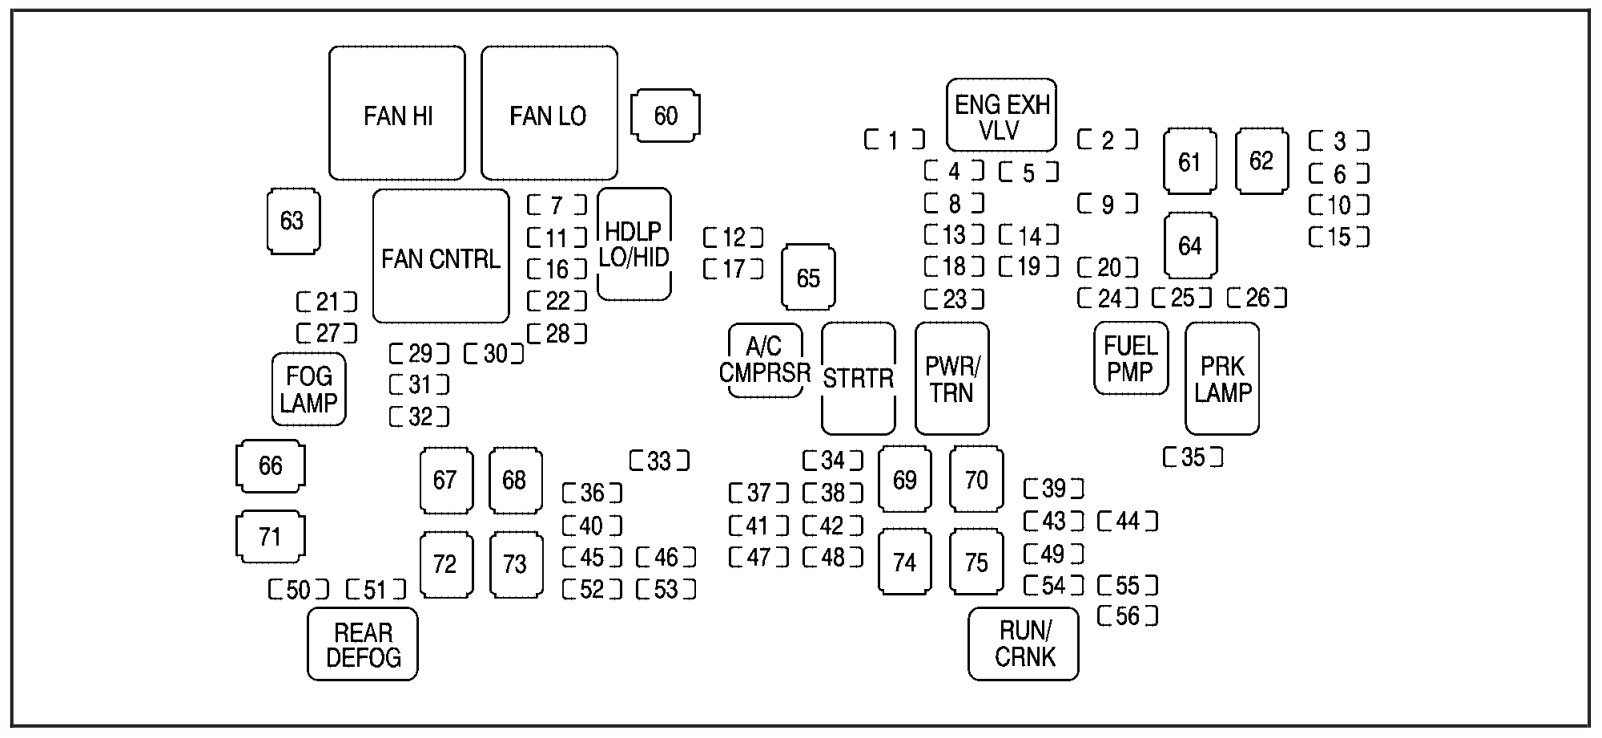 hight resolution of 1994 tahoe fuse box data diagram schematic 1994 chevy tahoe fuse box diagram 1994 tahoe fuse box